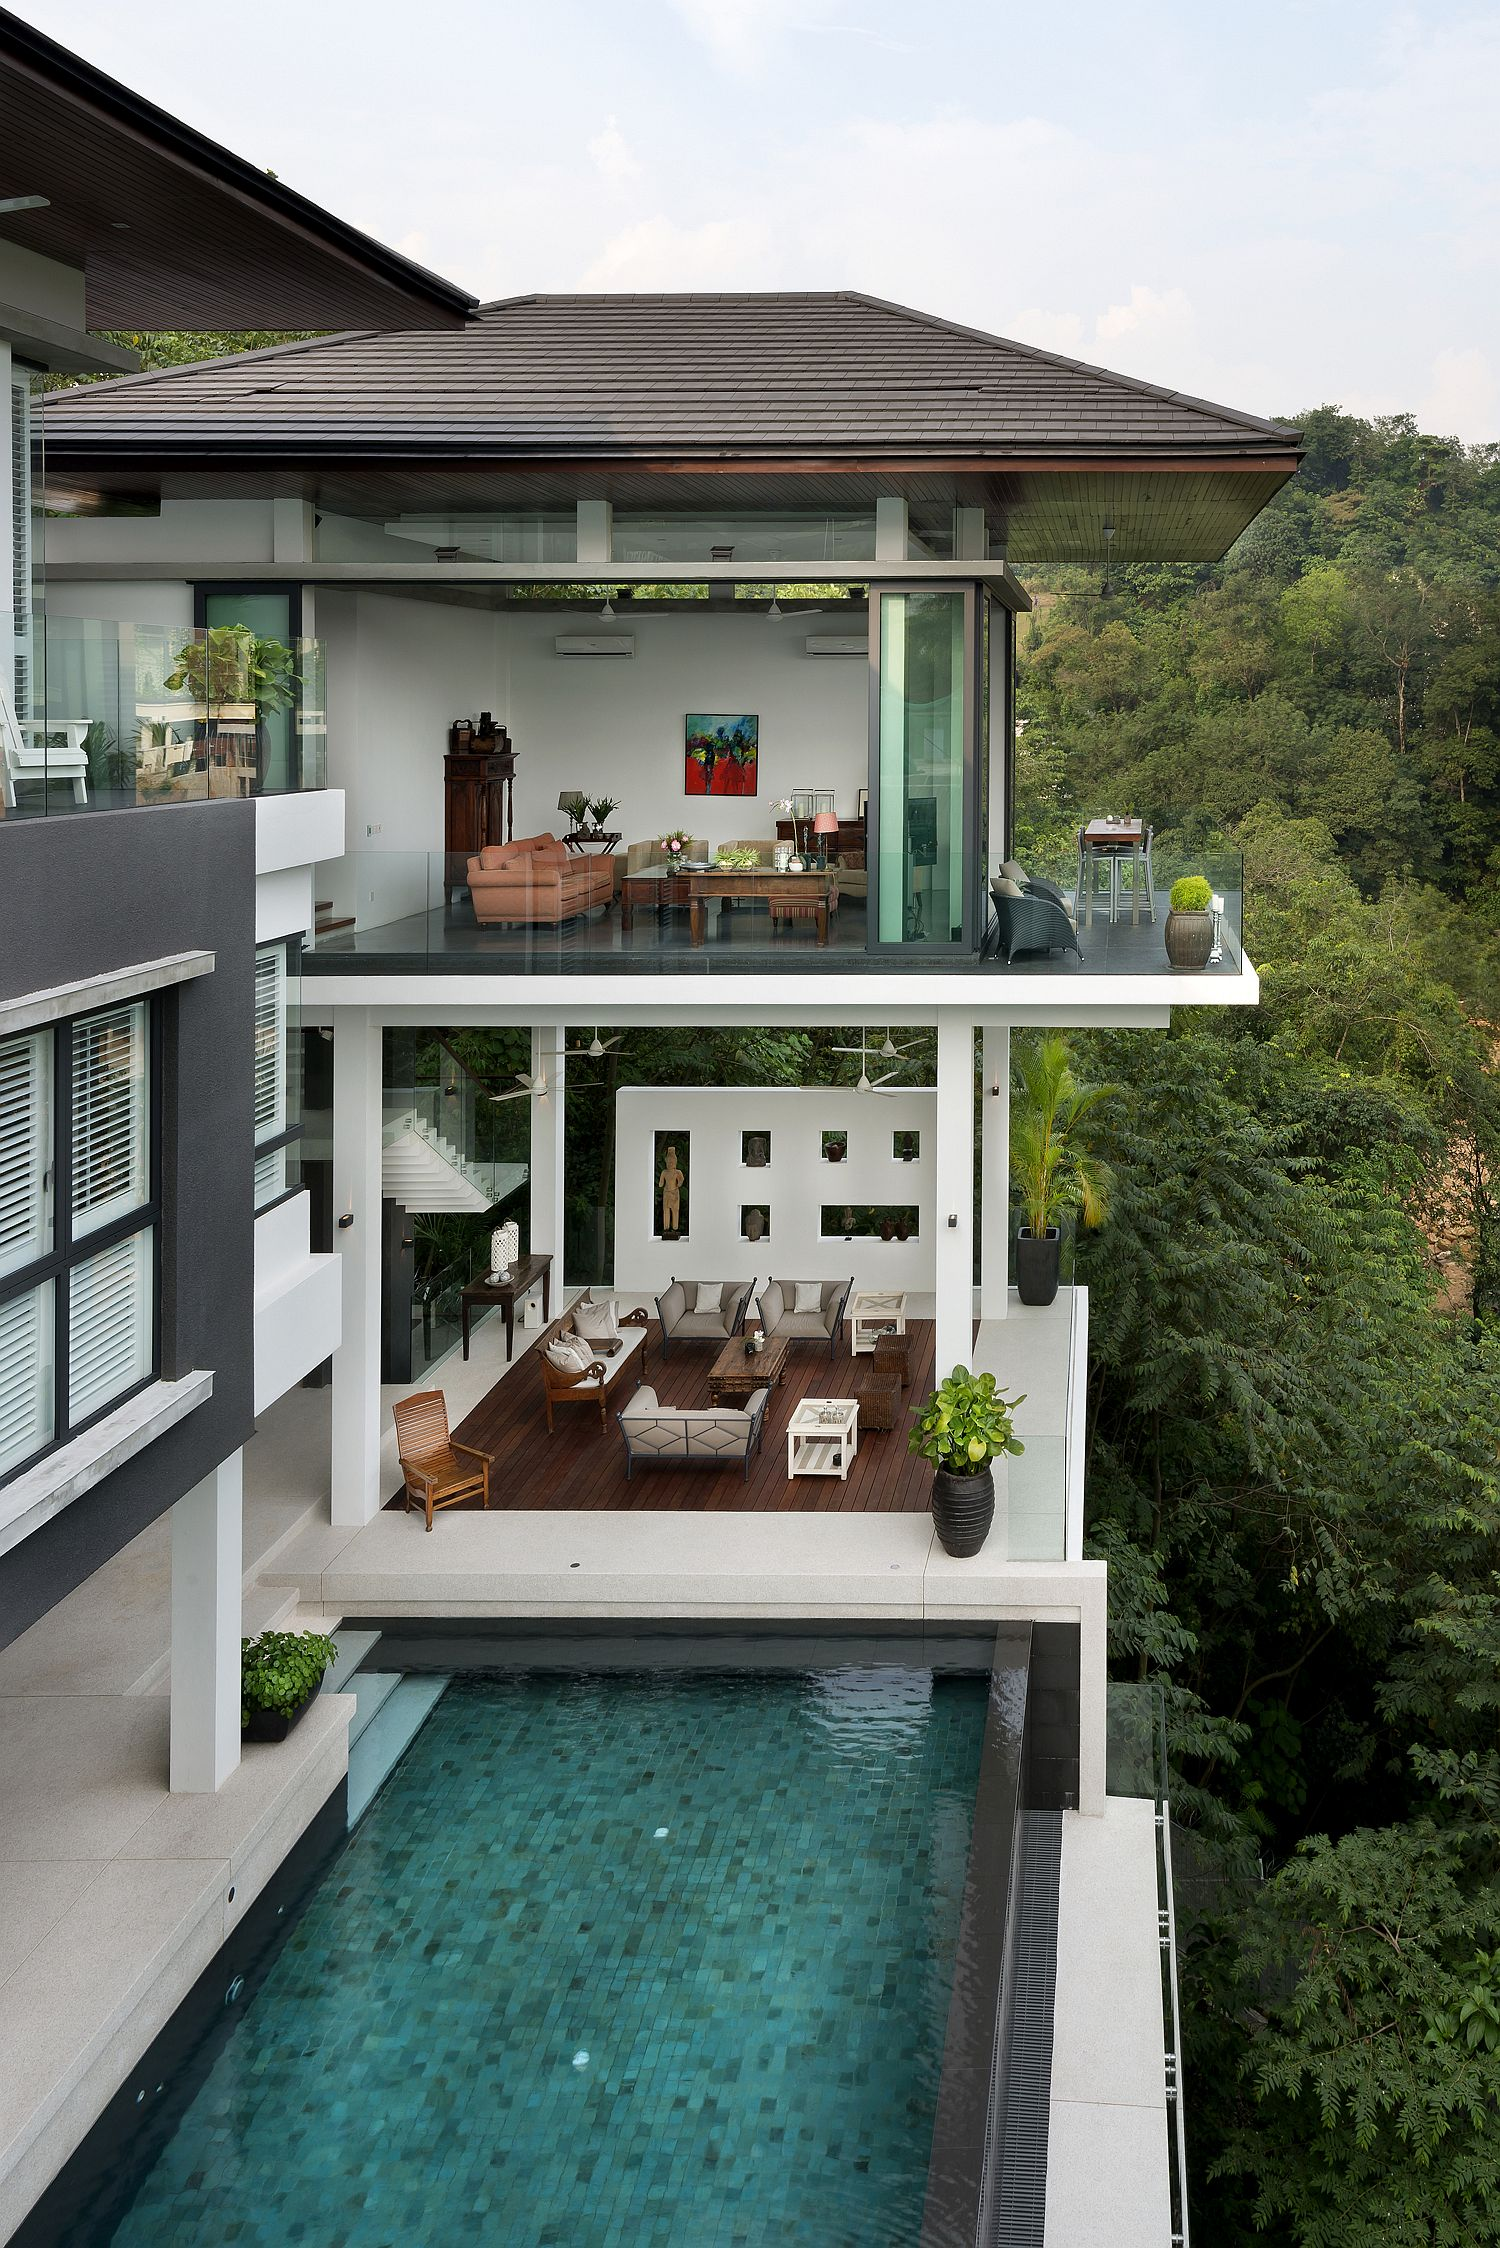 Spectacular Home Featured On Crazy Rich Asians With